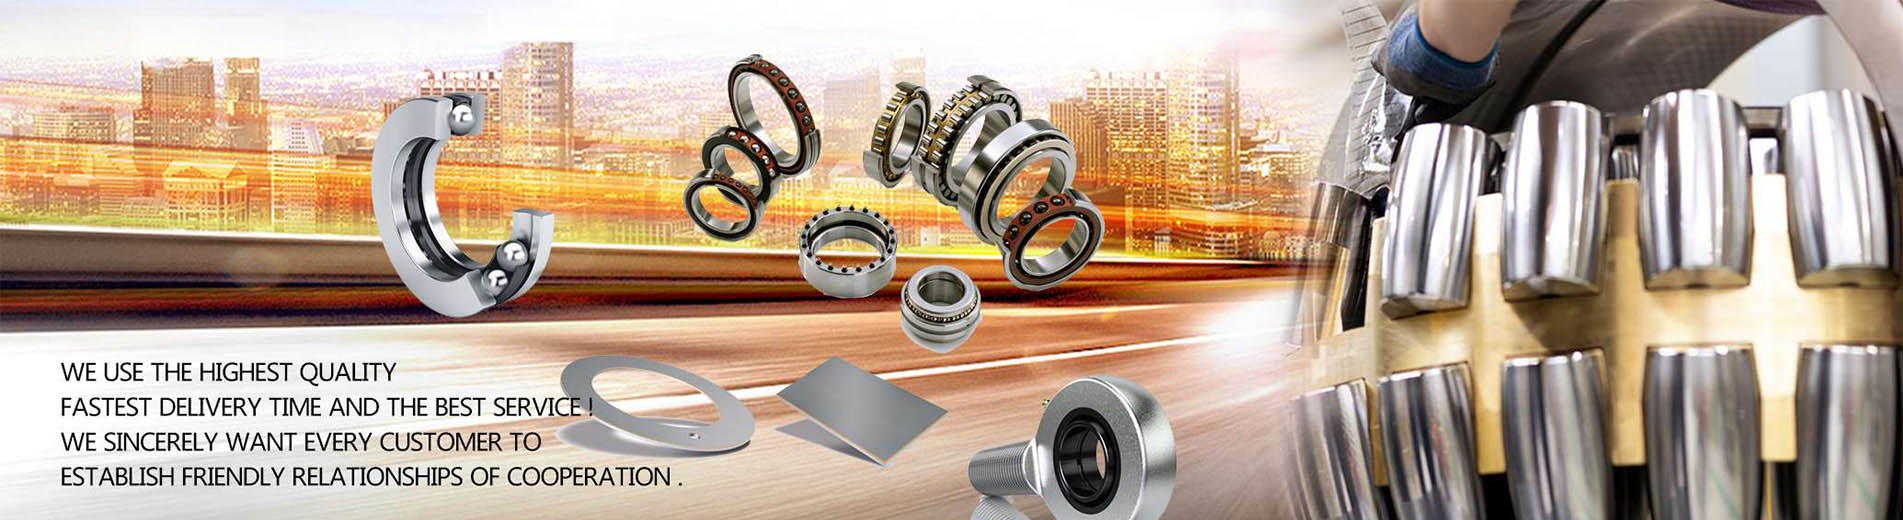 bearing competitive price and quick delivery within 3-5 days